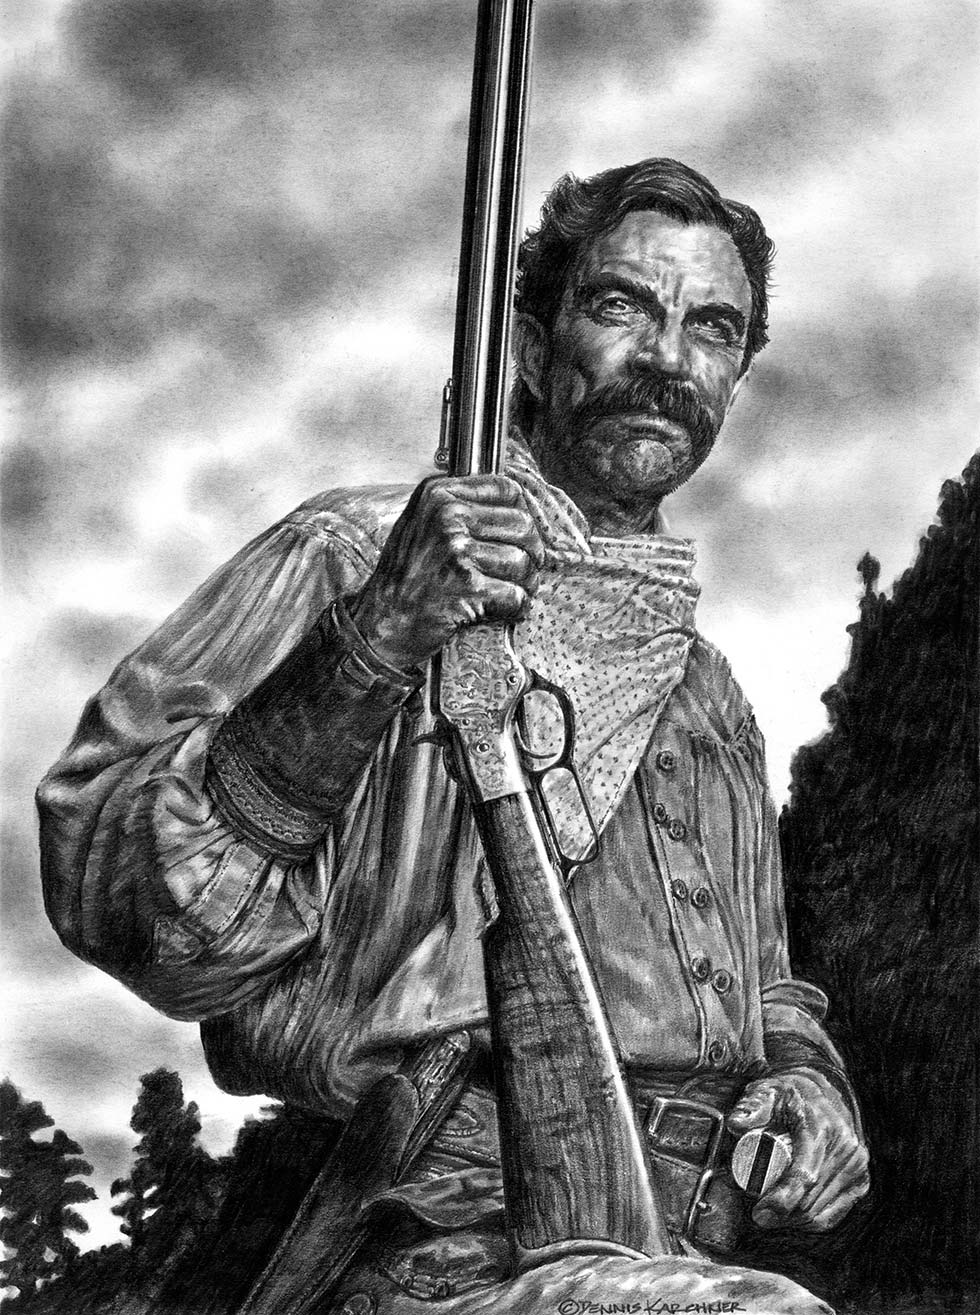 Pencil Illustration Of Tom Selleck With Rifle